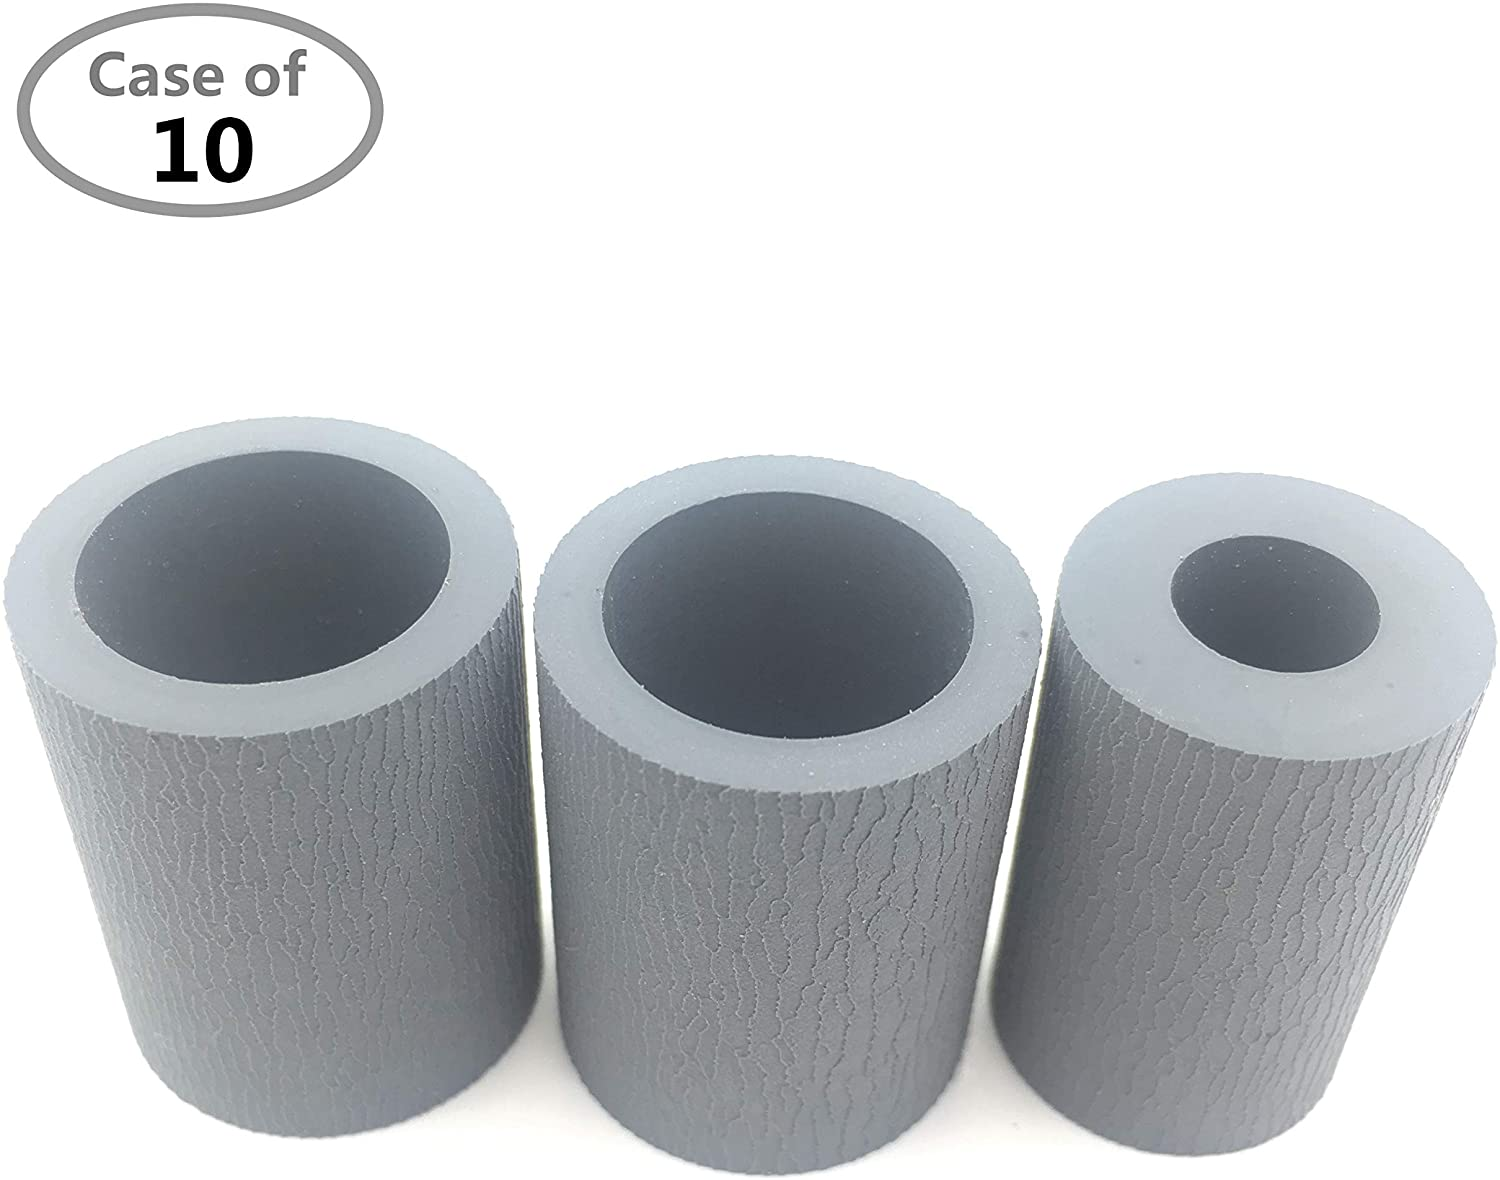 Case of 10 Packs,OKLILI 43895001 44384701 43000601 Frame Assy Retard Separation Feed Pickup Roller Tire Compatible with Okidata B410 B420 B430 B431 B440 B721 B731 B760 C610 C710 C711 C712 C822 C823